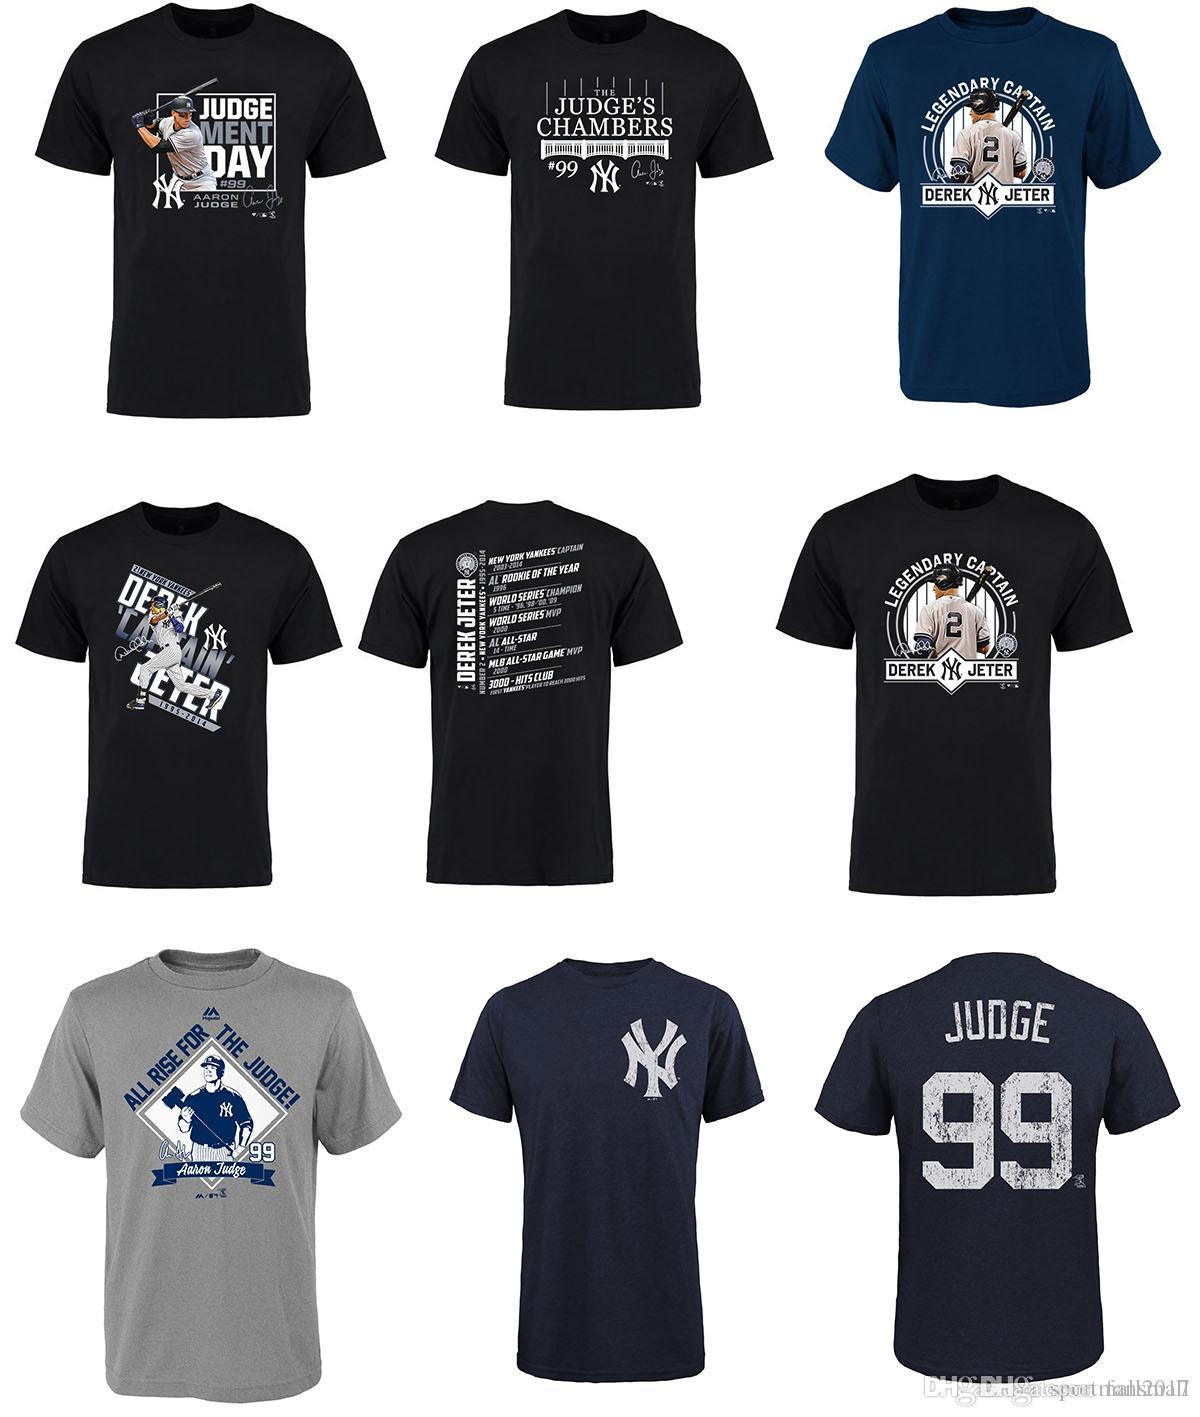 b3472731a 2017 MLB New York Yankees T Shirt Aaron Judge Judgement Day T Shir All Star  Game Home Run Derby Champion Robinson Cano ALL STAR MVP Tee Different T  Shirts ...